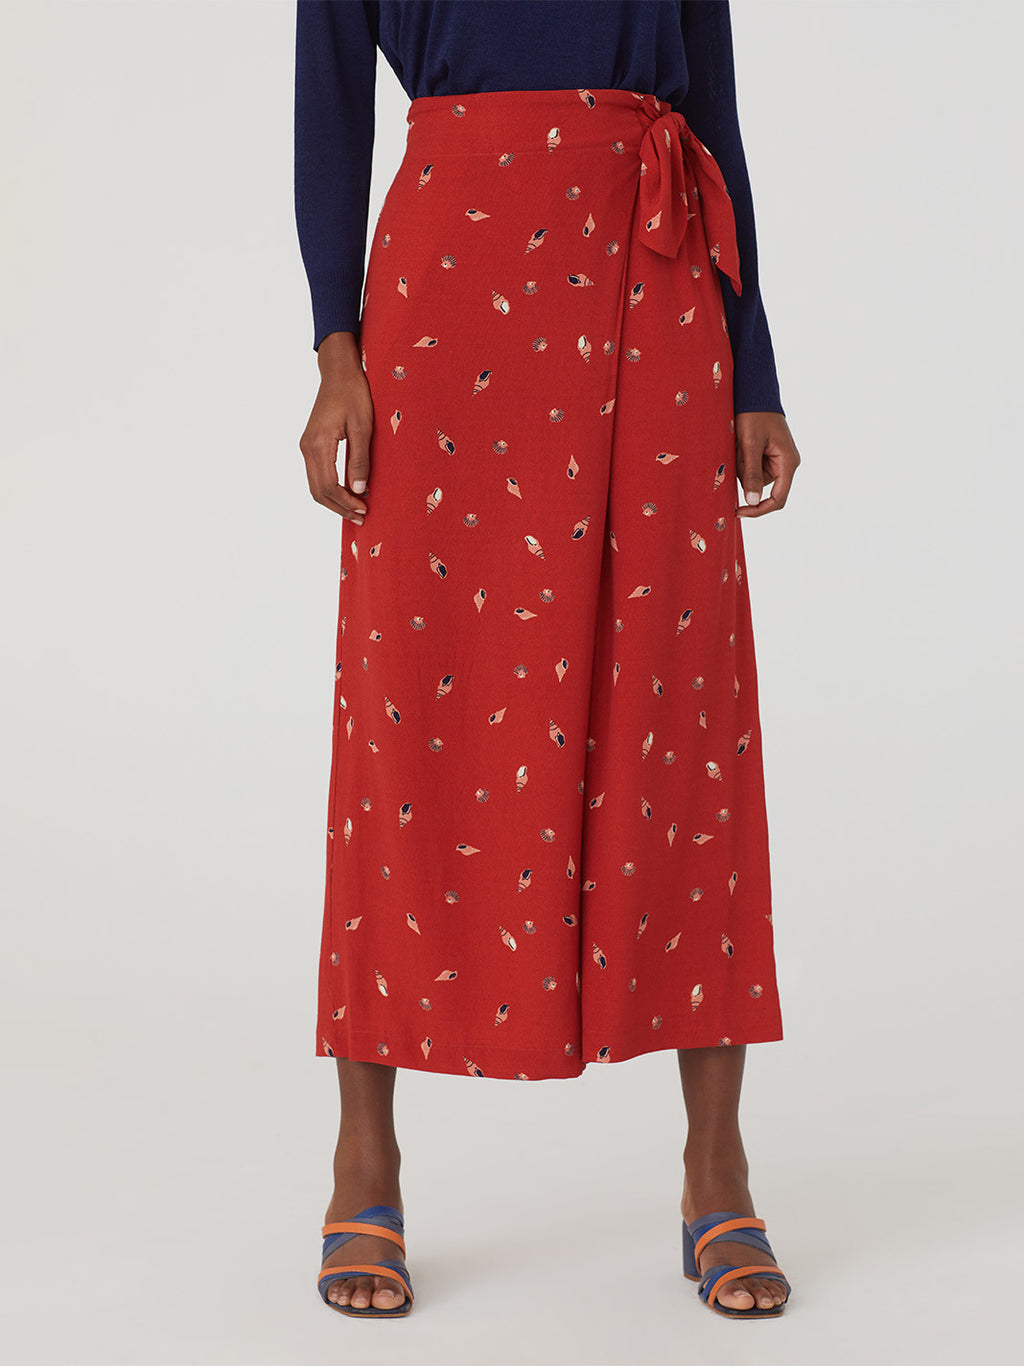 Seashell Skirt Pant in Dark Coral